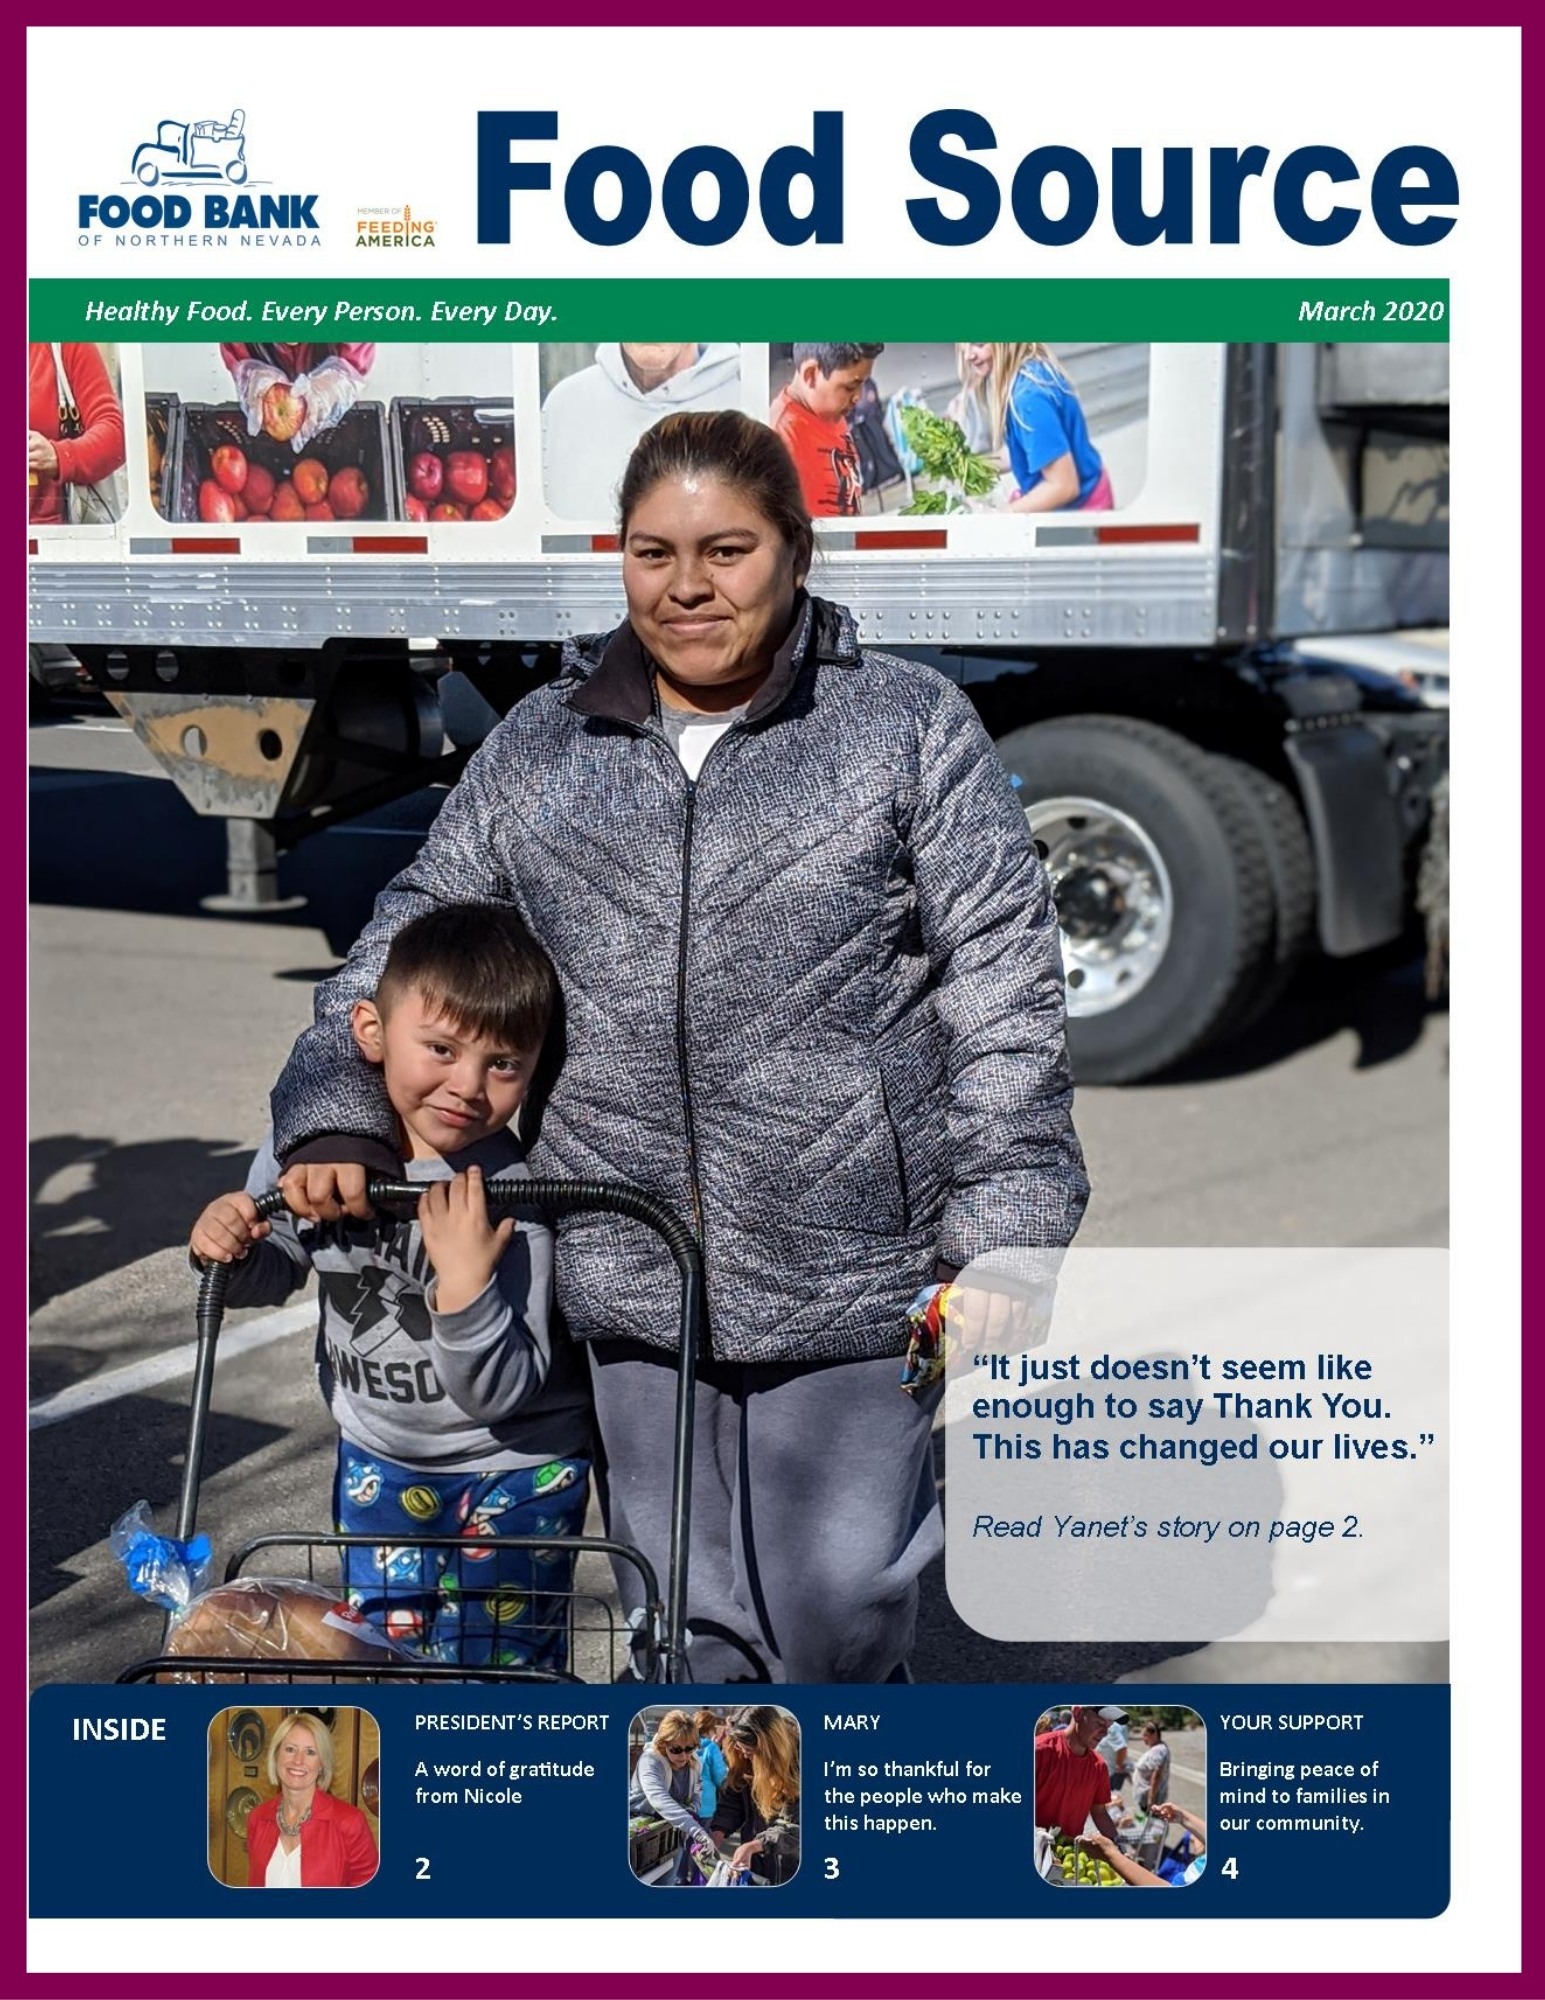 March 2020 Food Source Newsletter   Food Bank of Northern Nevada